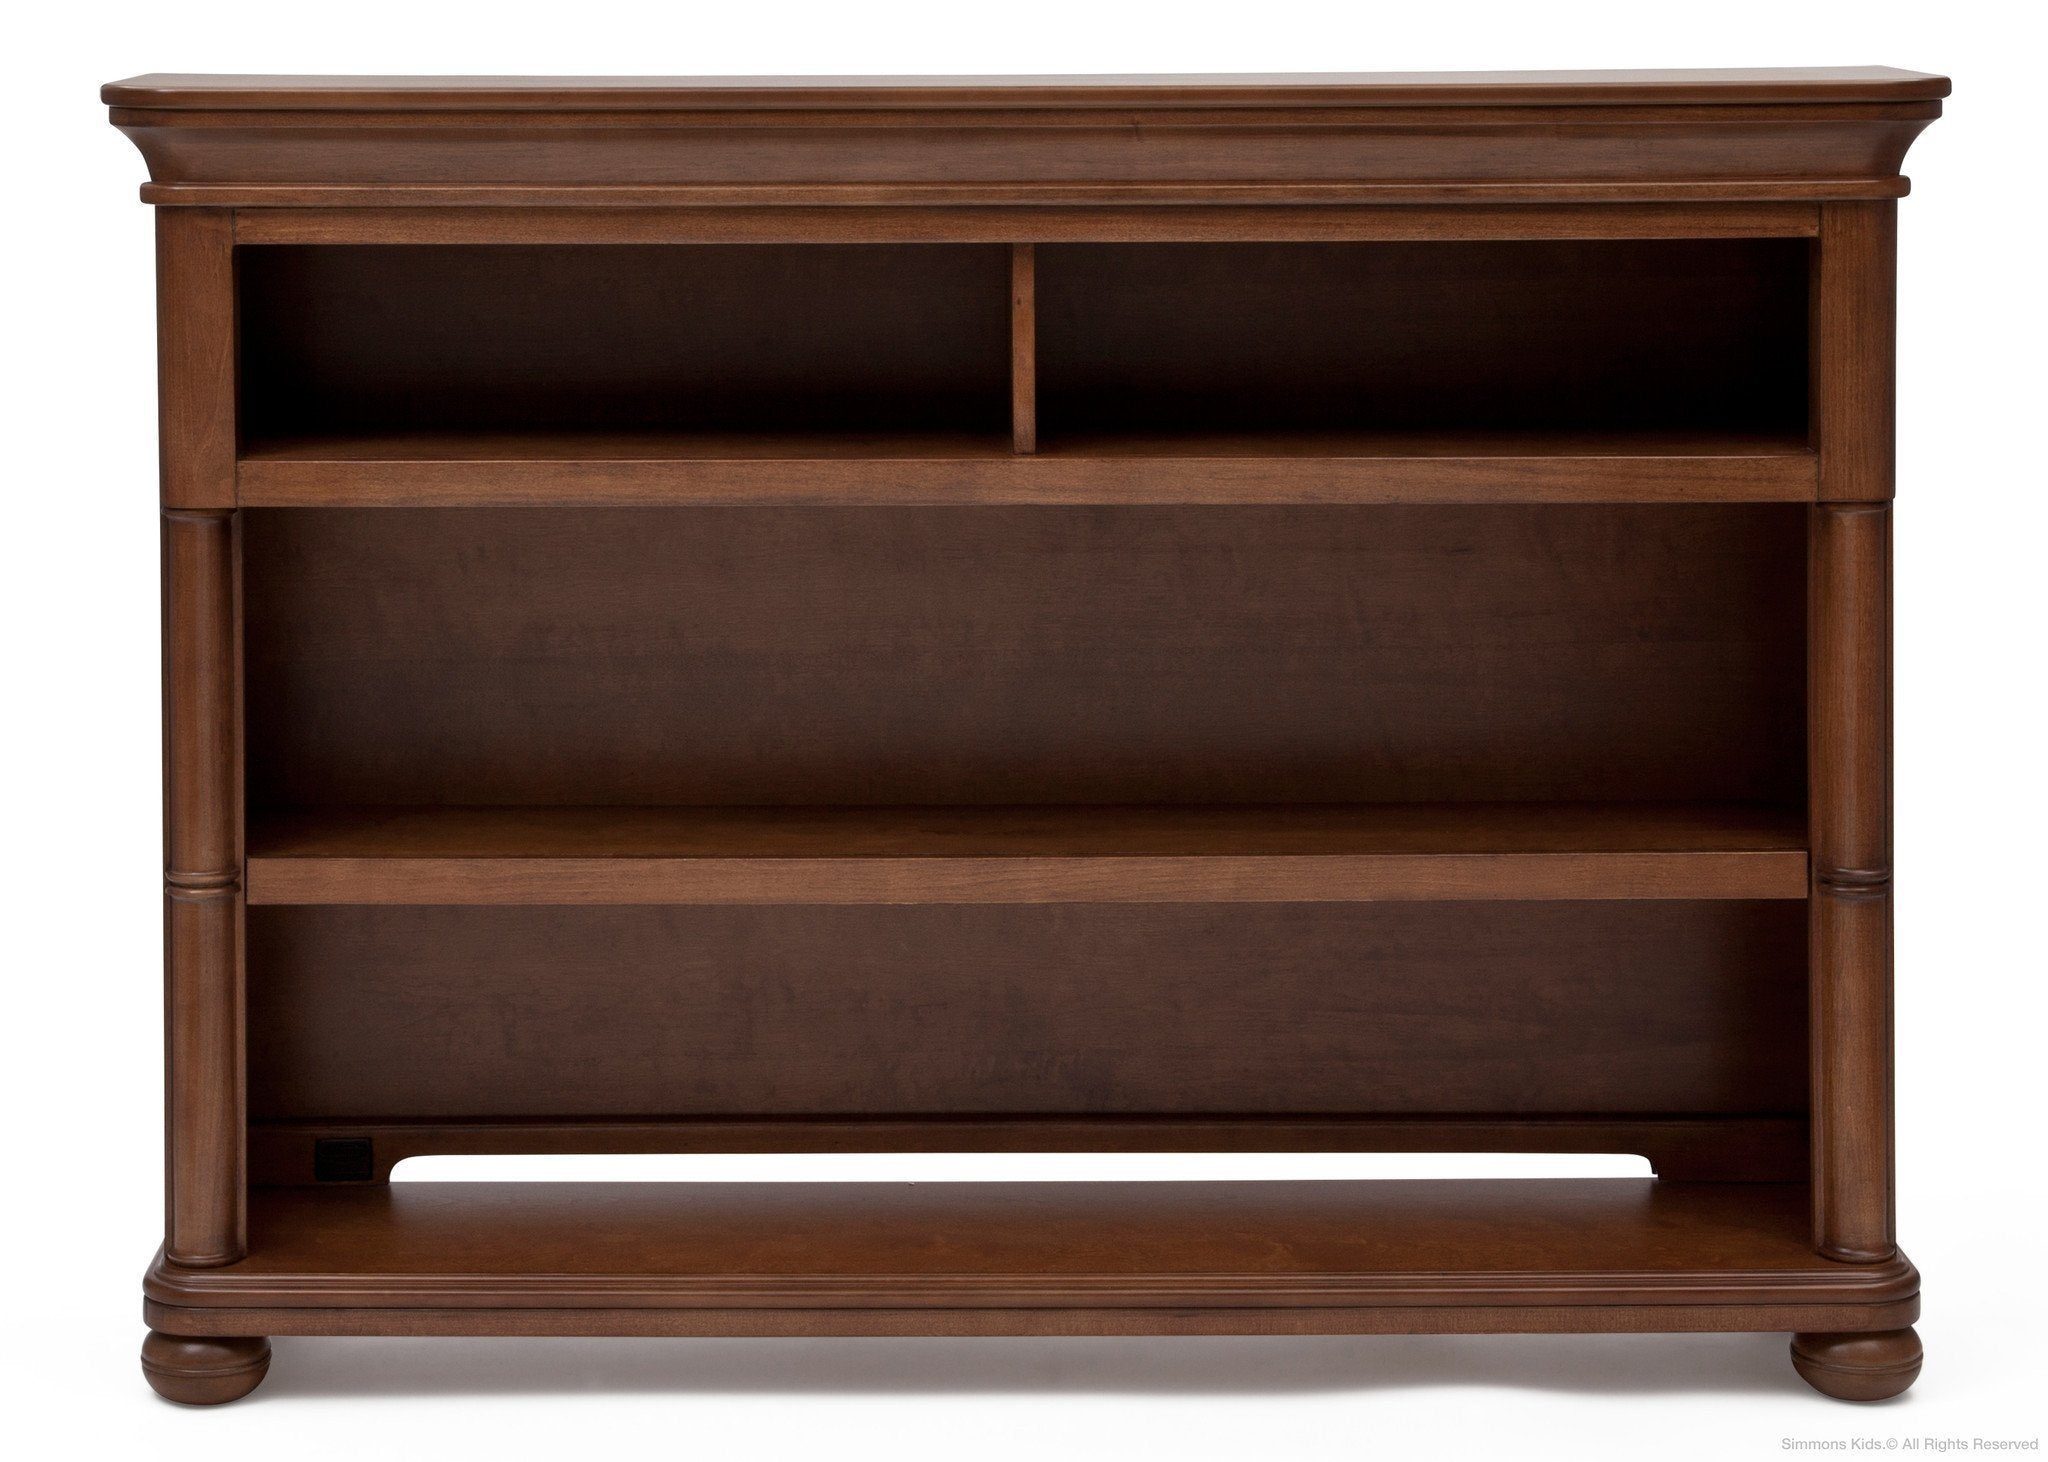 Simmons Kids Chestnut (227) Hanover Park Bookcase & Hutch, Front View atop Base b3b